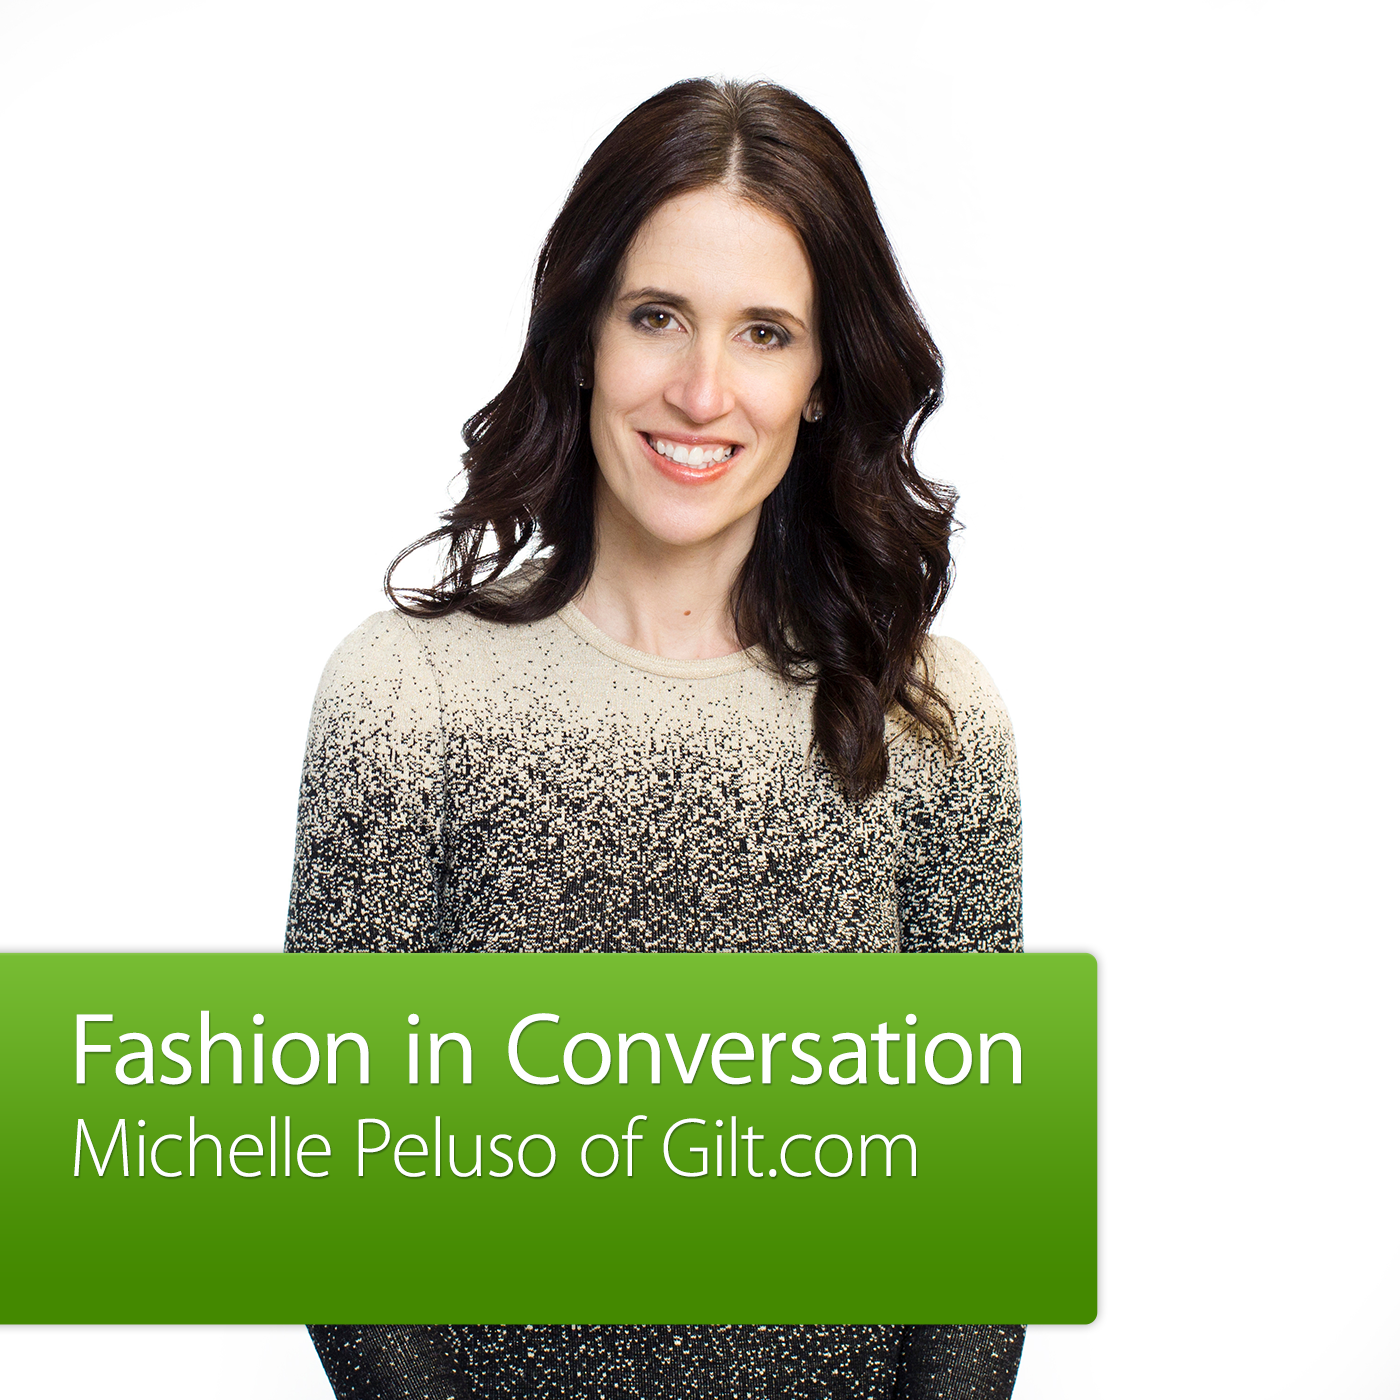 Michelle Peluso of Gilt.com: Fashion in Conversation